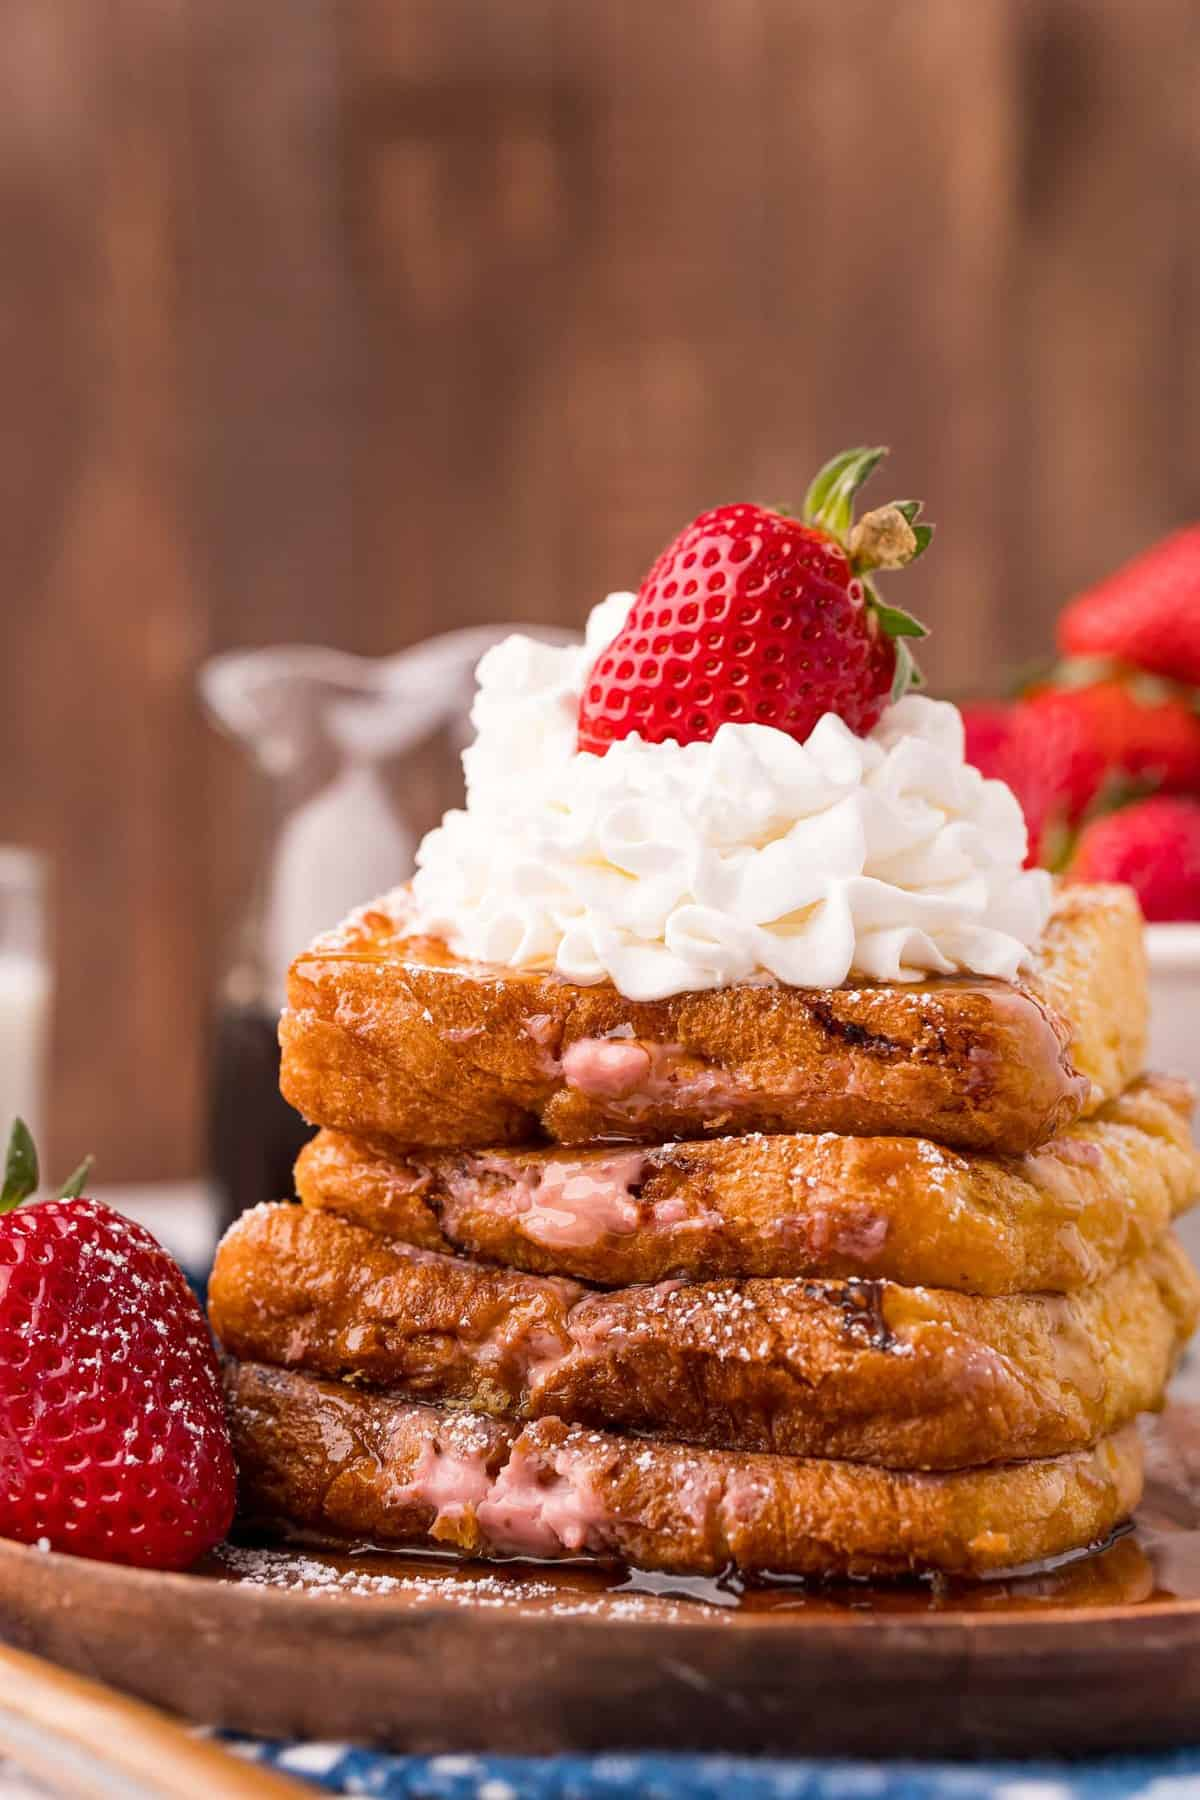 Stack of stuffed french toast with whipped cream and strawberries.